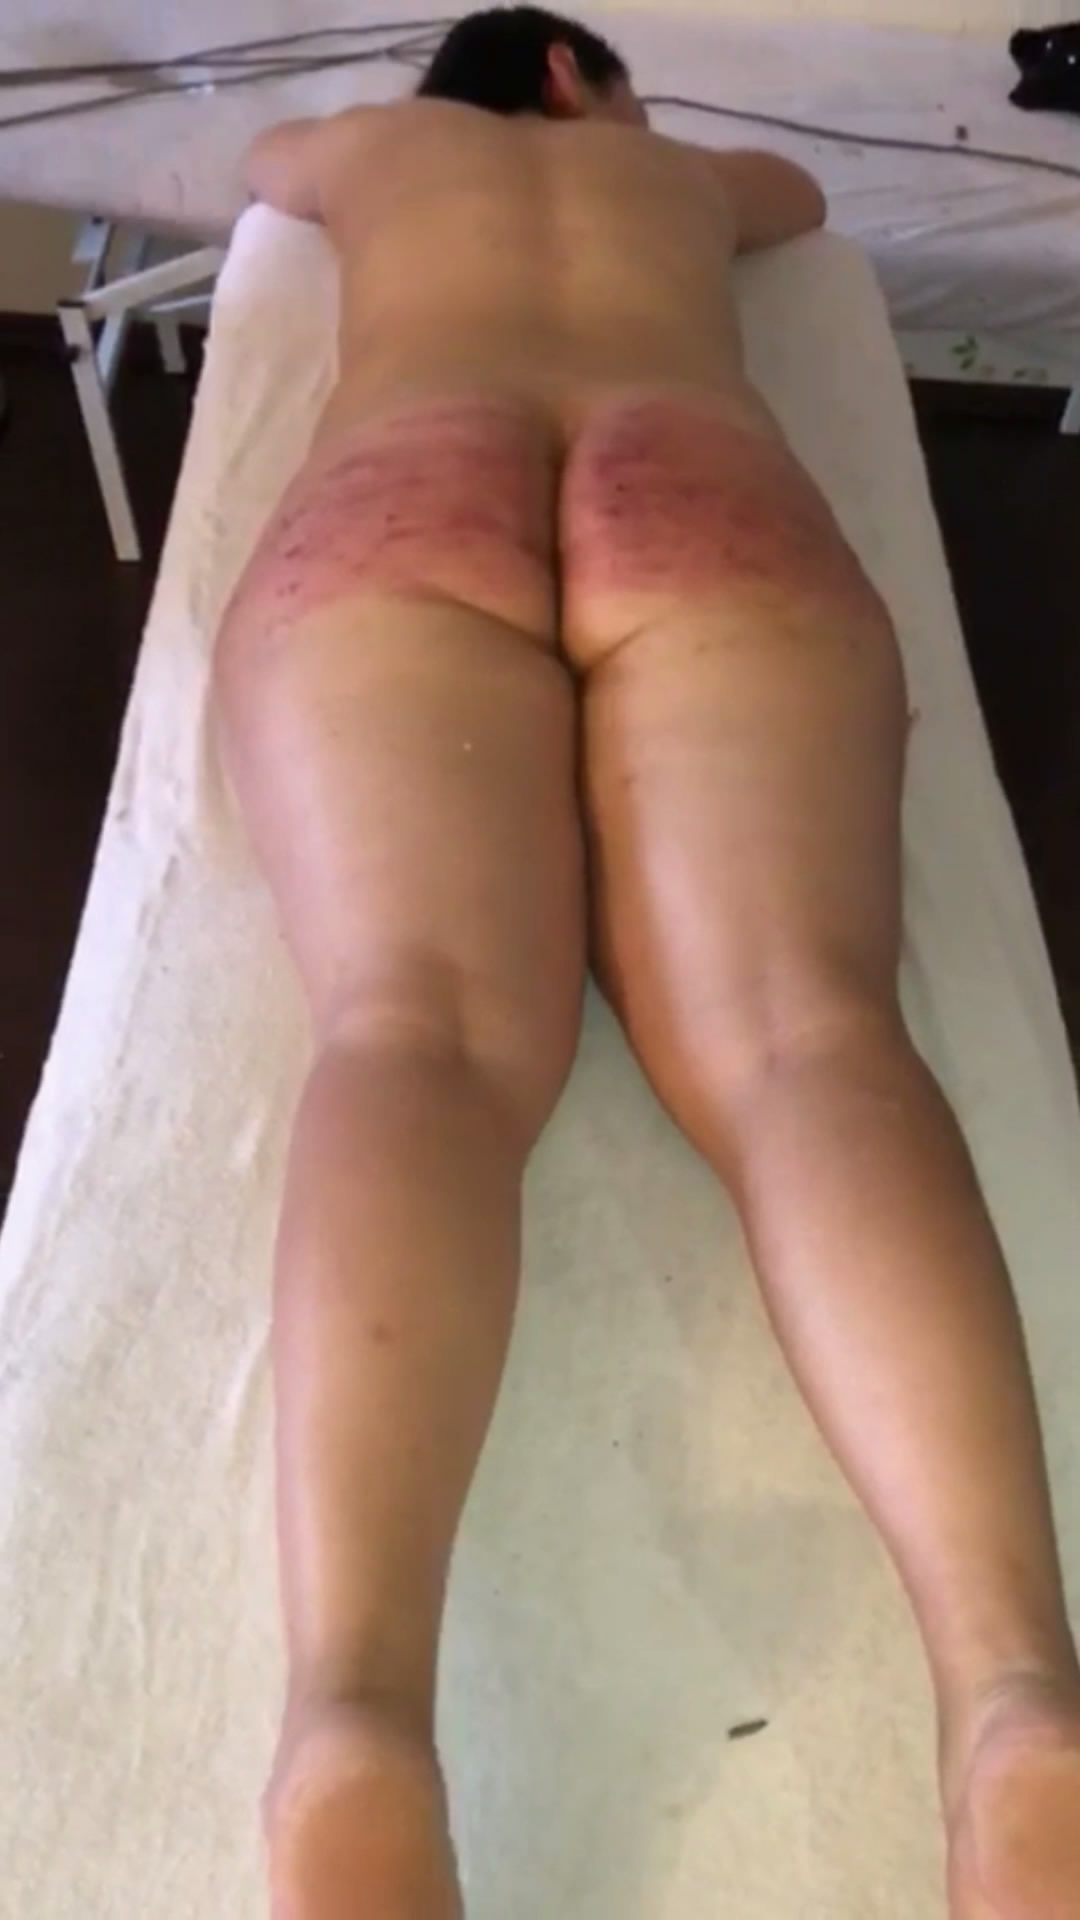 spankinganna – MP4/Full HD – Two Dominant Spanking My Beautiful Ass (Exclusive)